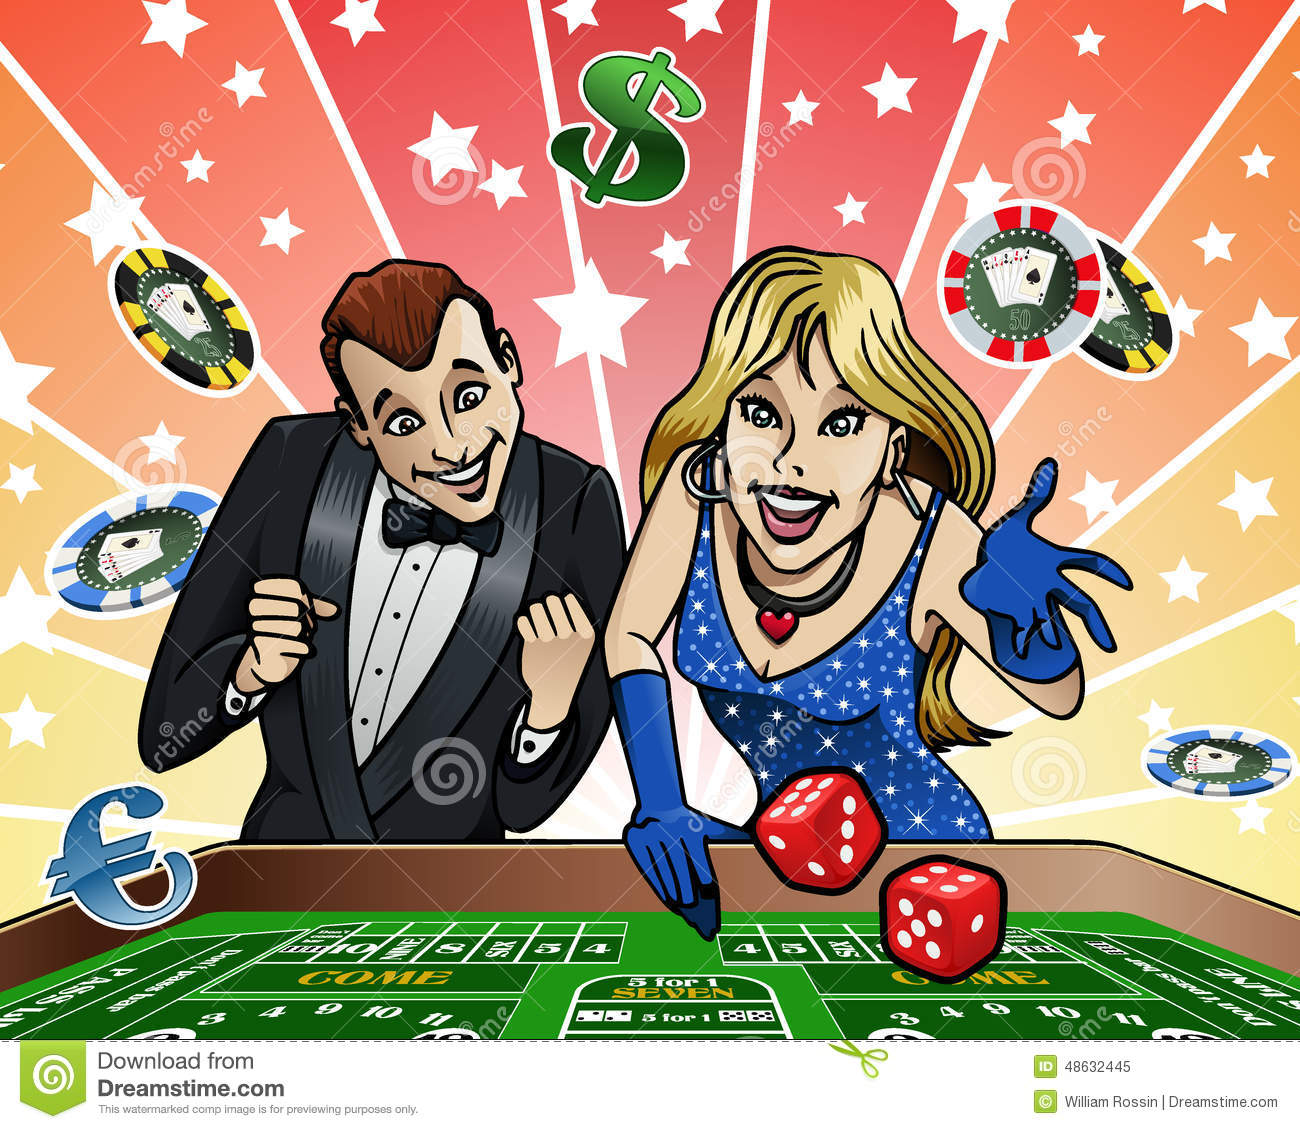 Image result for FREE DICE TABLE CARTOONS